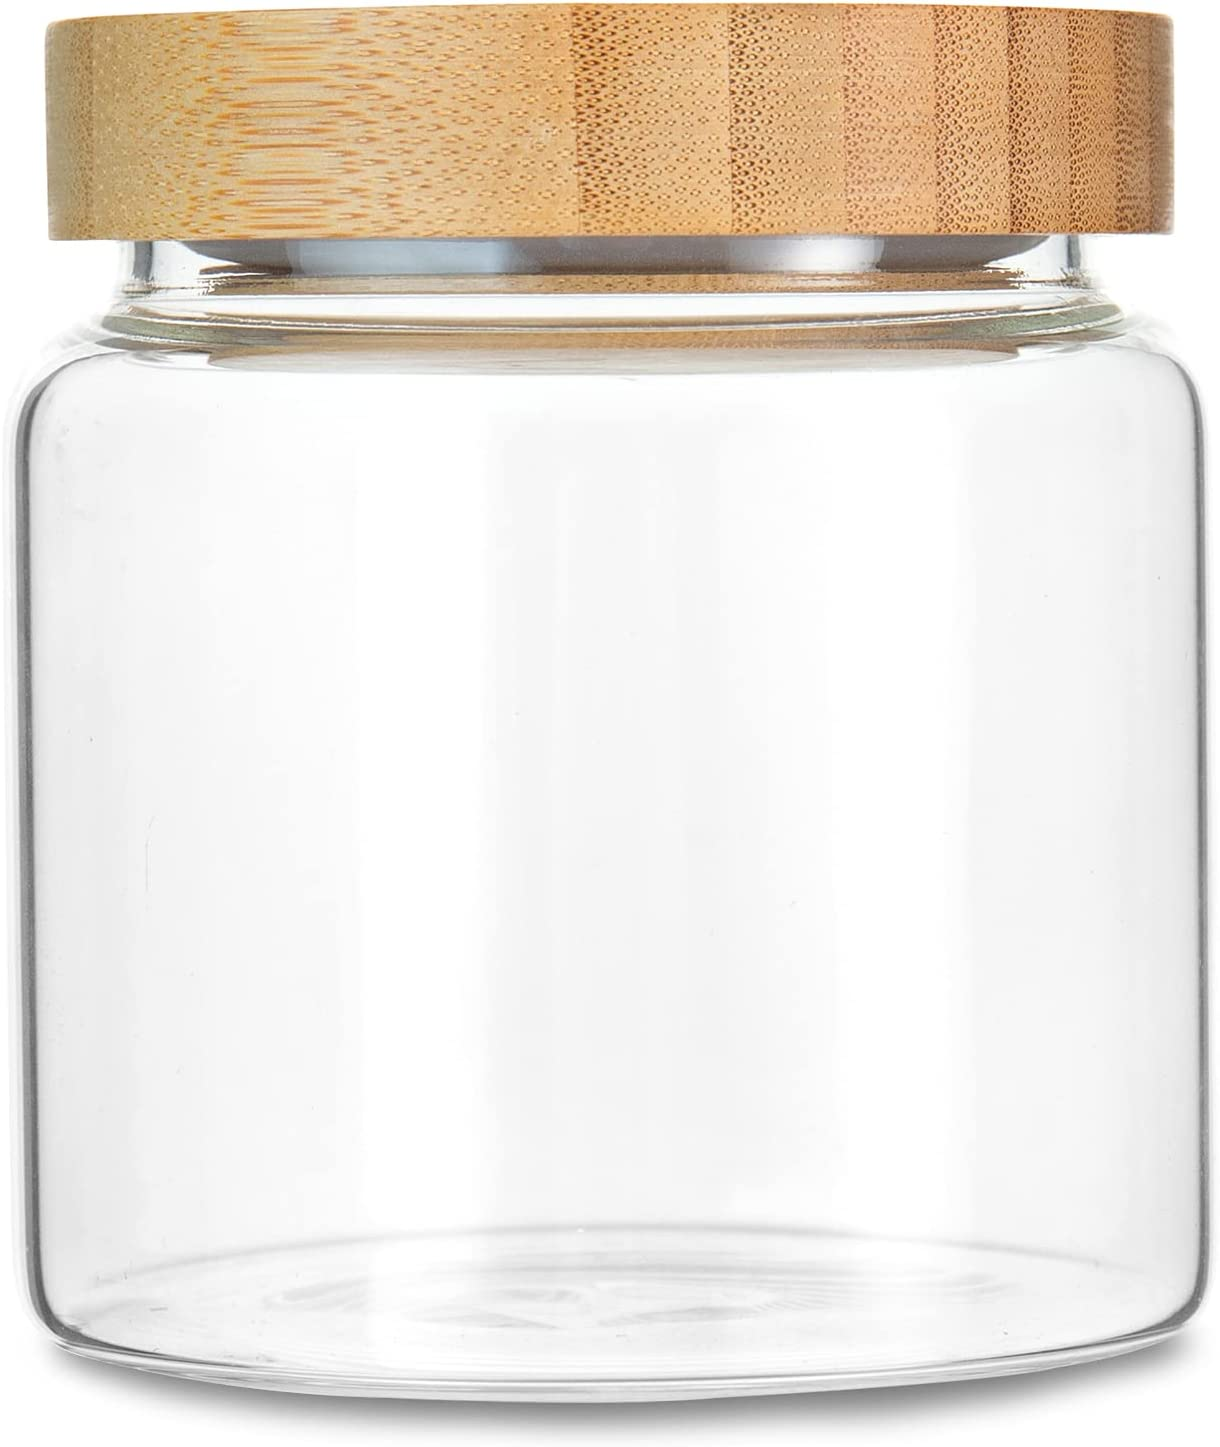 MOLADRI 480ML/16Oz Clear Cute Glass Storage Canister Holder with Airtight Bamboo Lid, Modern Decorative Small Container Jar for Coffee, Spice, Candy, Salt, Cookie, Condiment, Pepper, Sugar